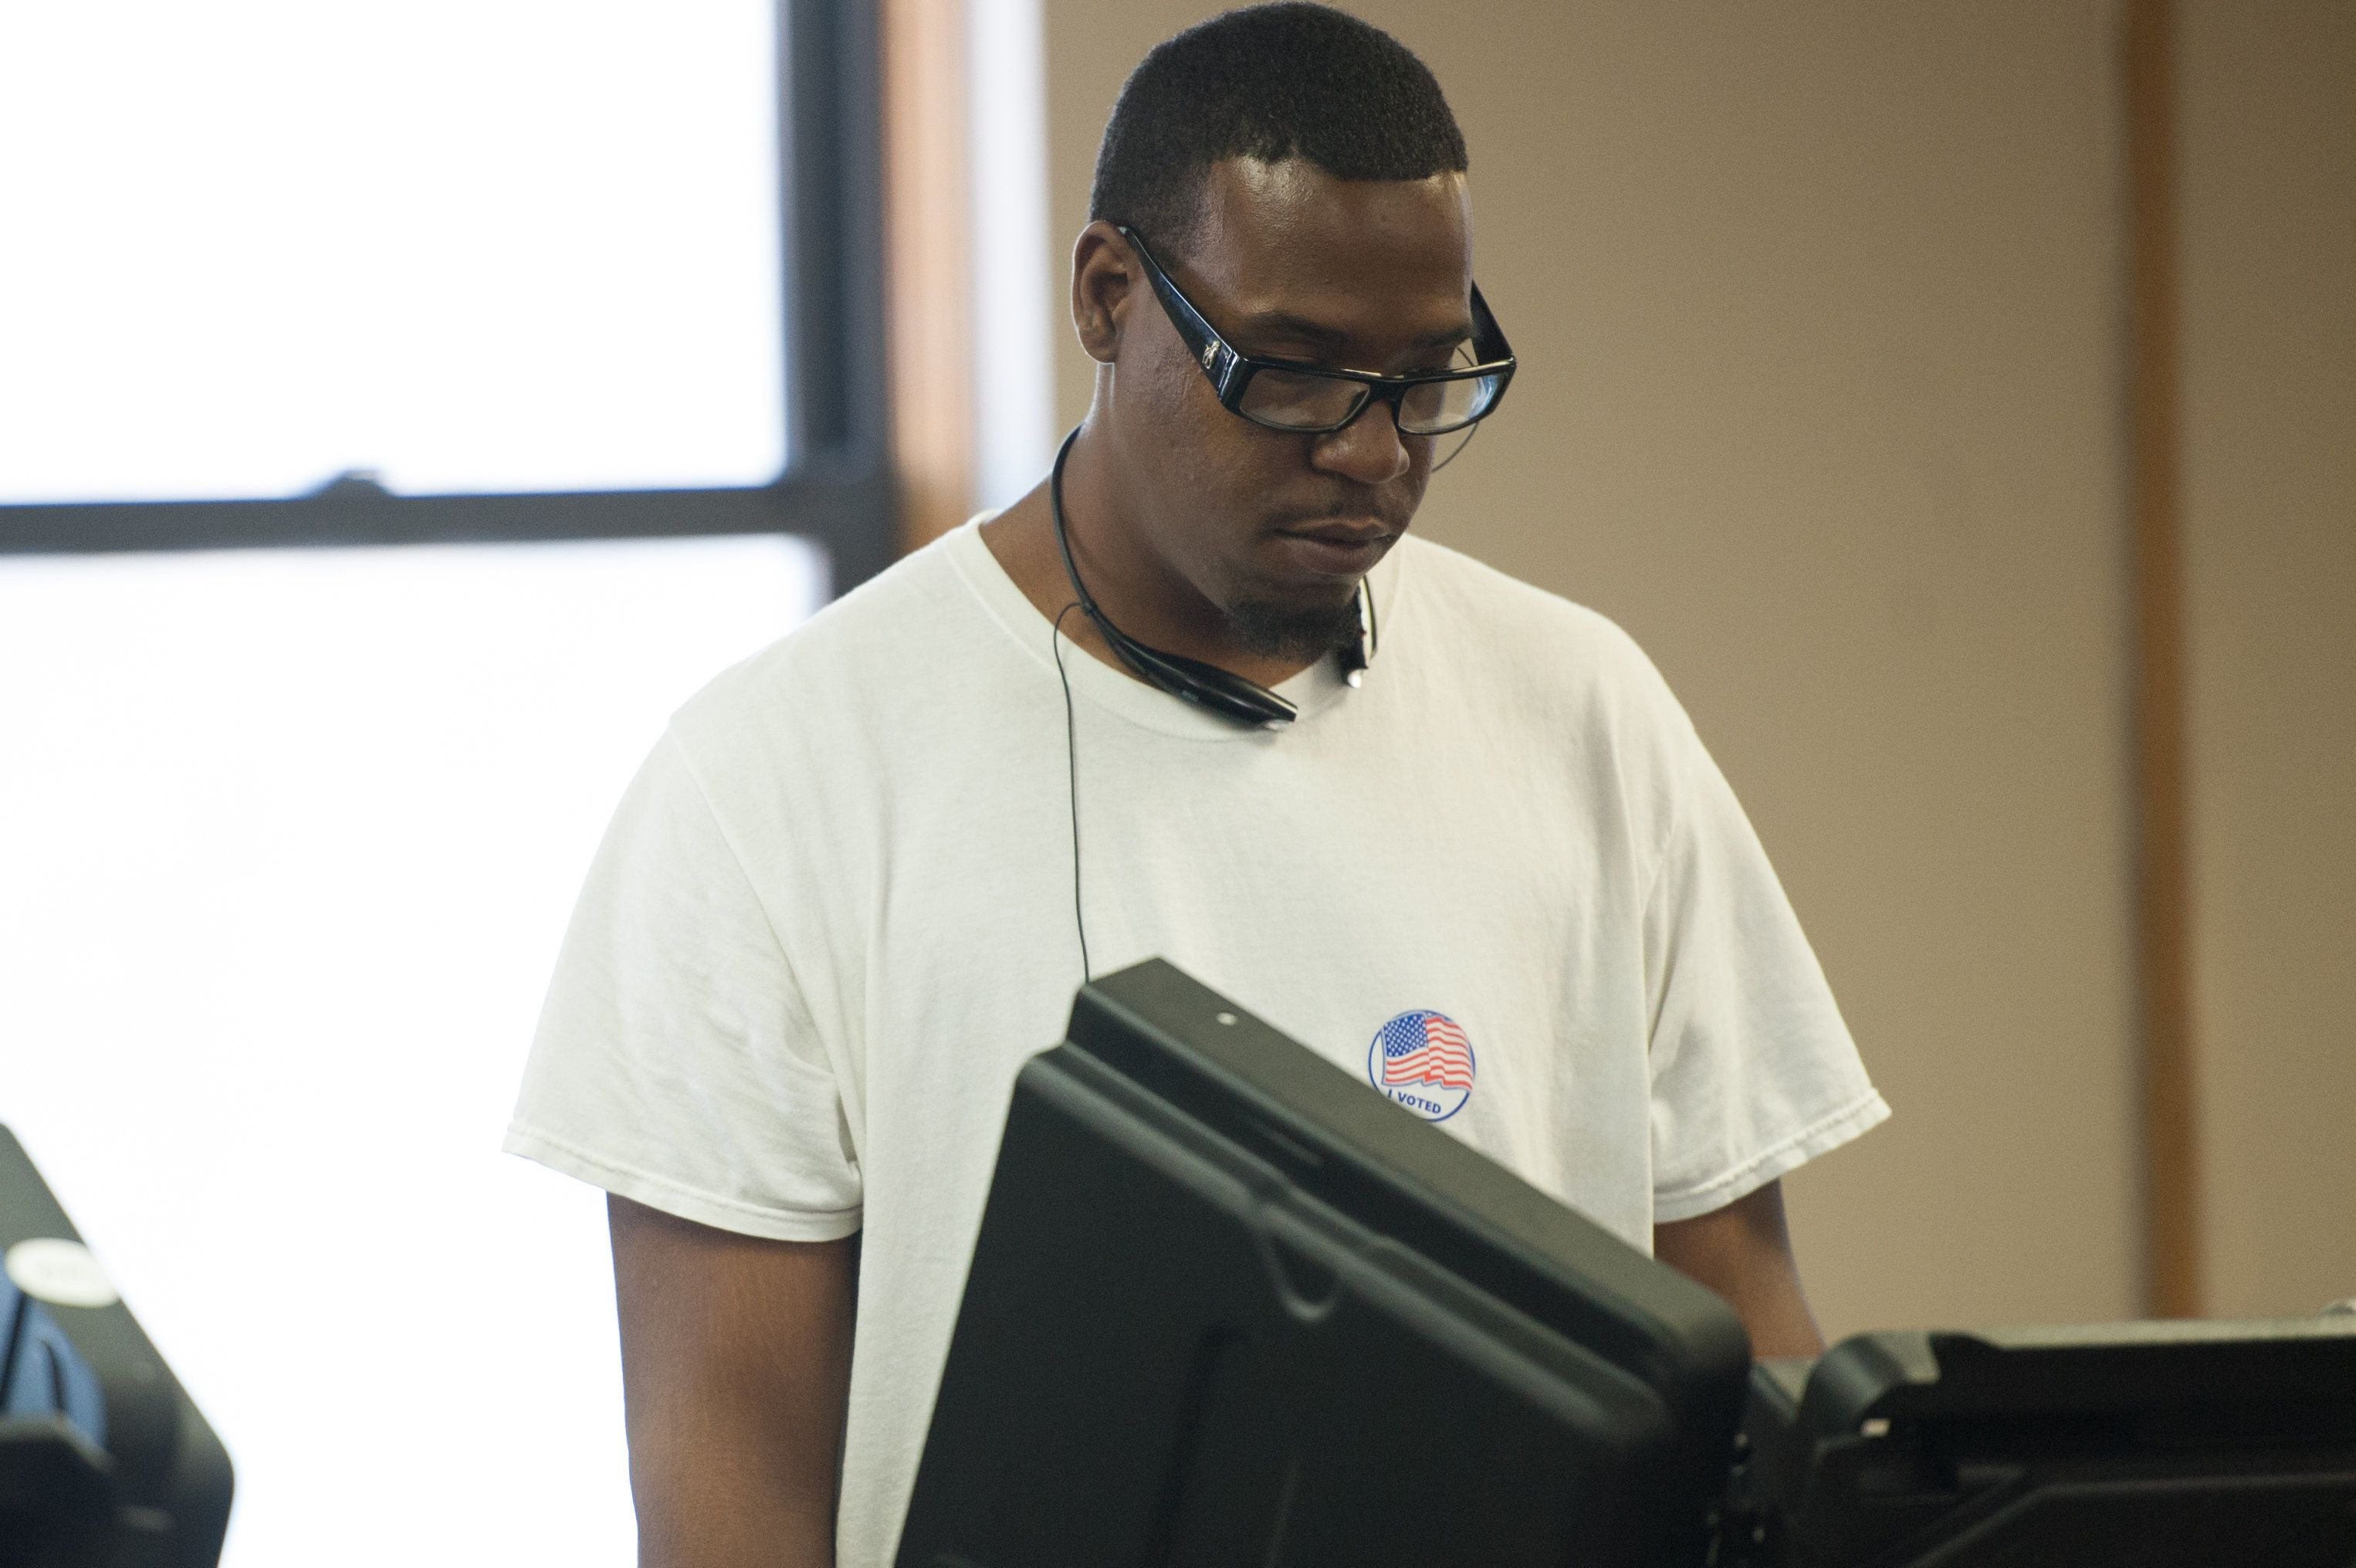 A man casts his ballot during Missouri primary voting at the First Baptist Church of Ferguson on March 15, 2016 in Ferguson, Missouri. / AFP / Michael B. Thomas        (Photo credit should read MICHAEL B. THOMAS/AFP/Getty Images)